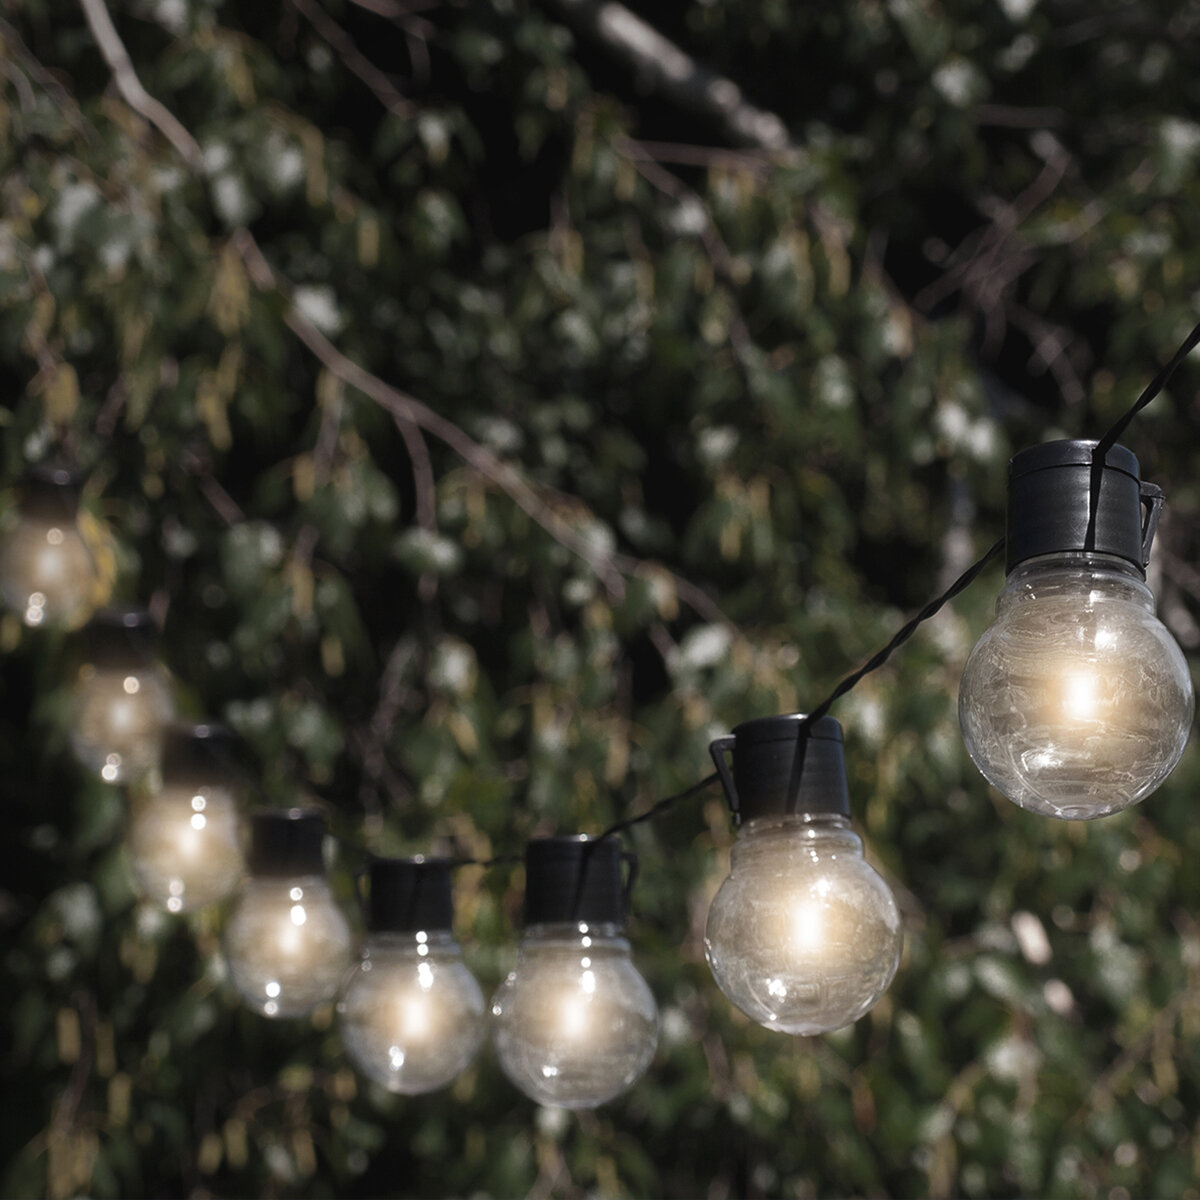 Outdoor Lighting Trees Outdoor solar lights for trees wayfair nitebulbs solar 10 light globe string lights workwithnaturefo